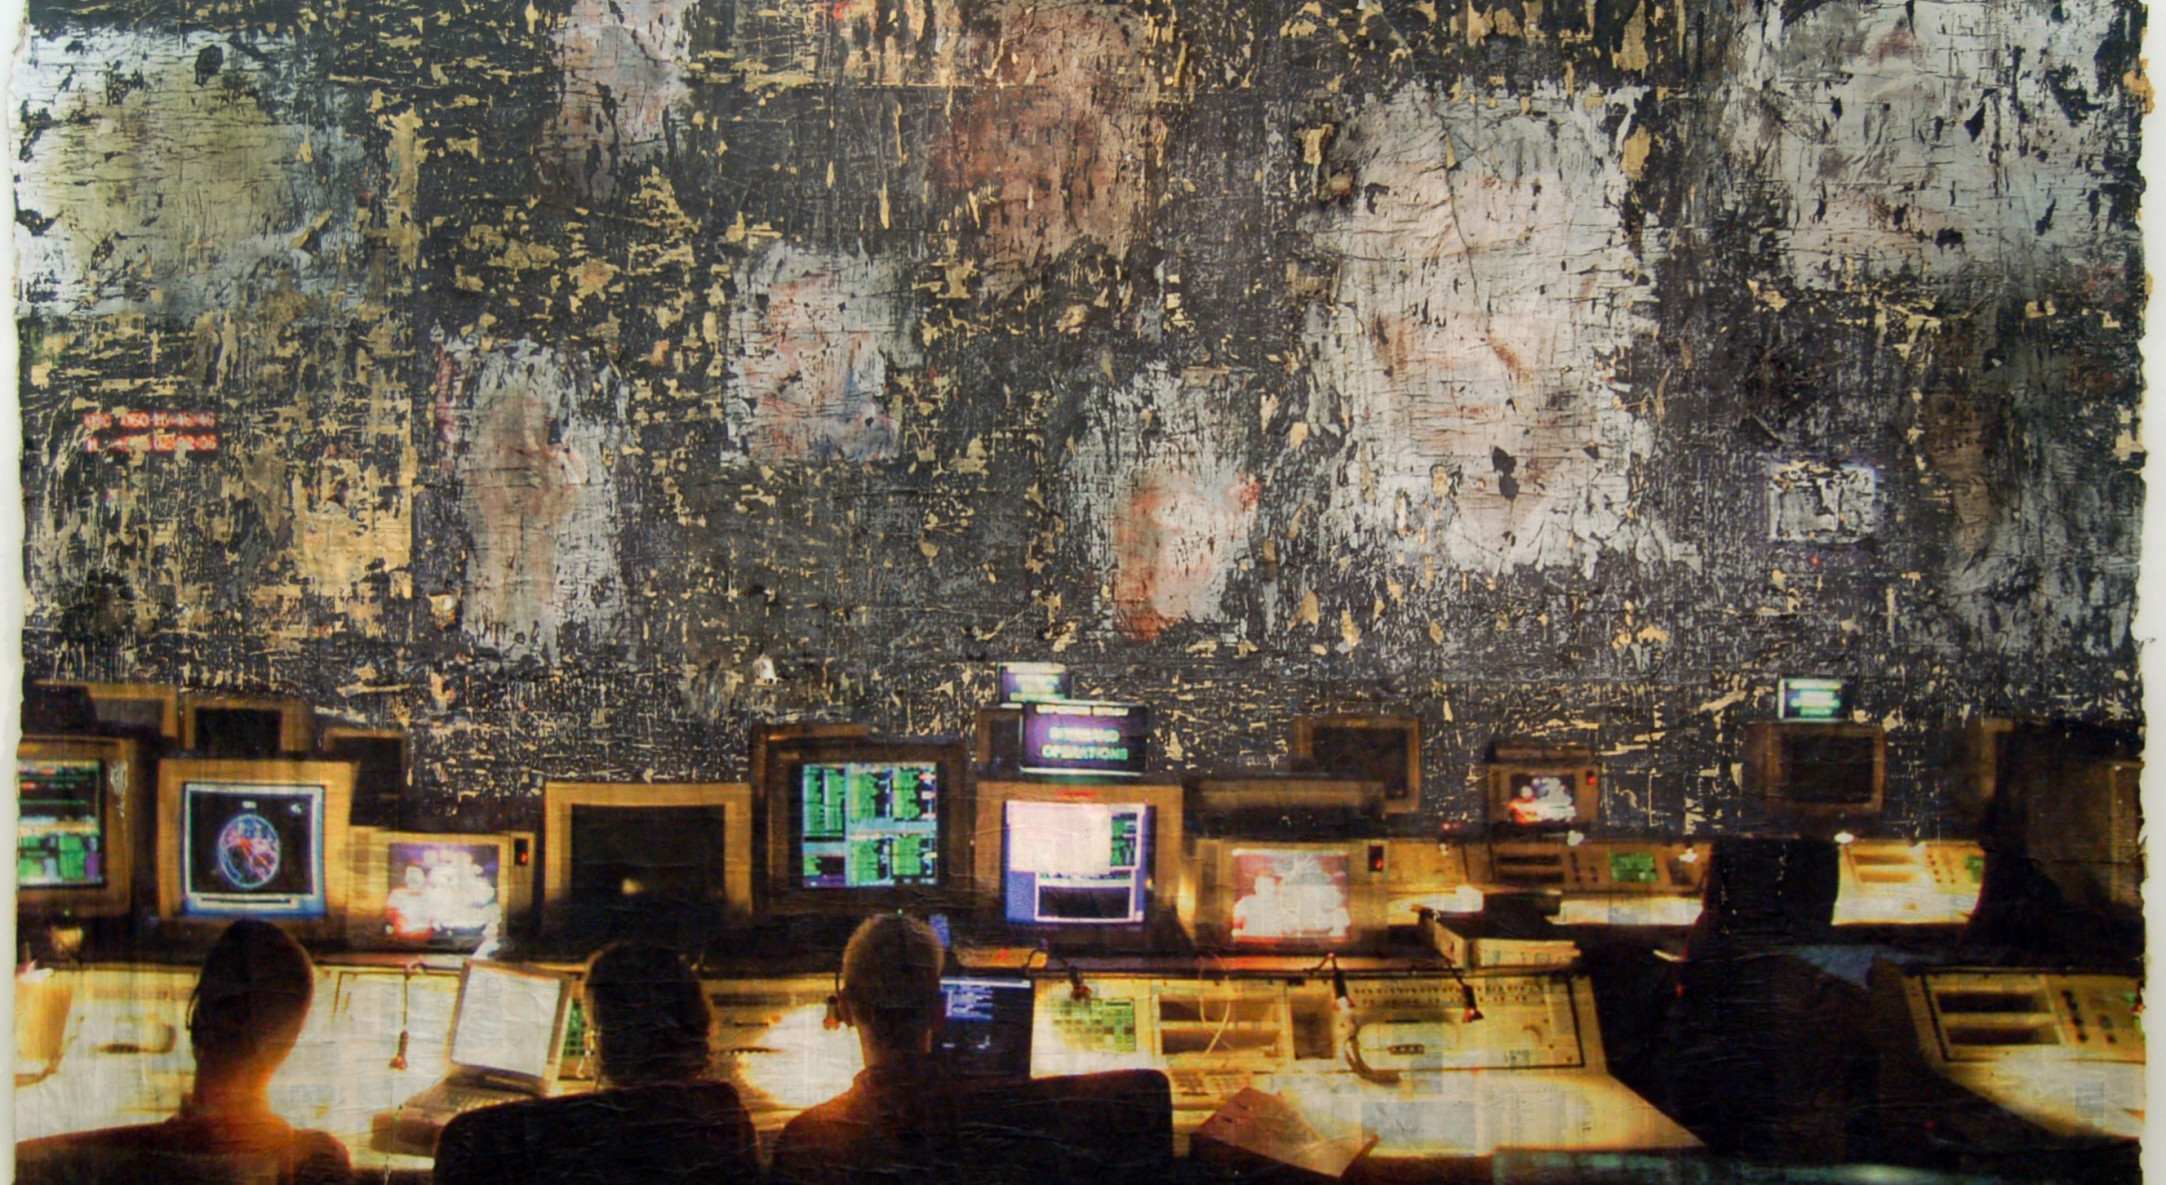 Control Room, 2006 (detail)